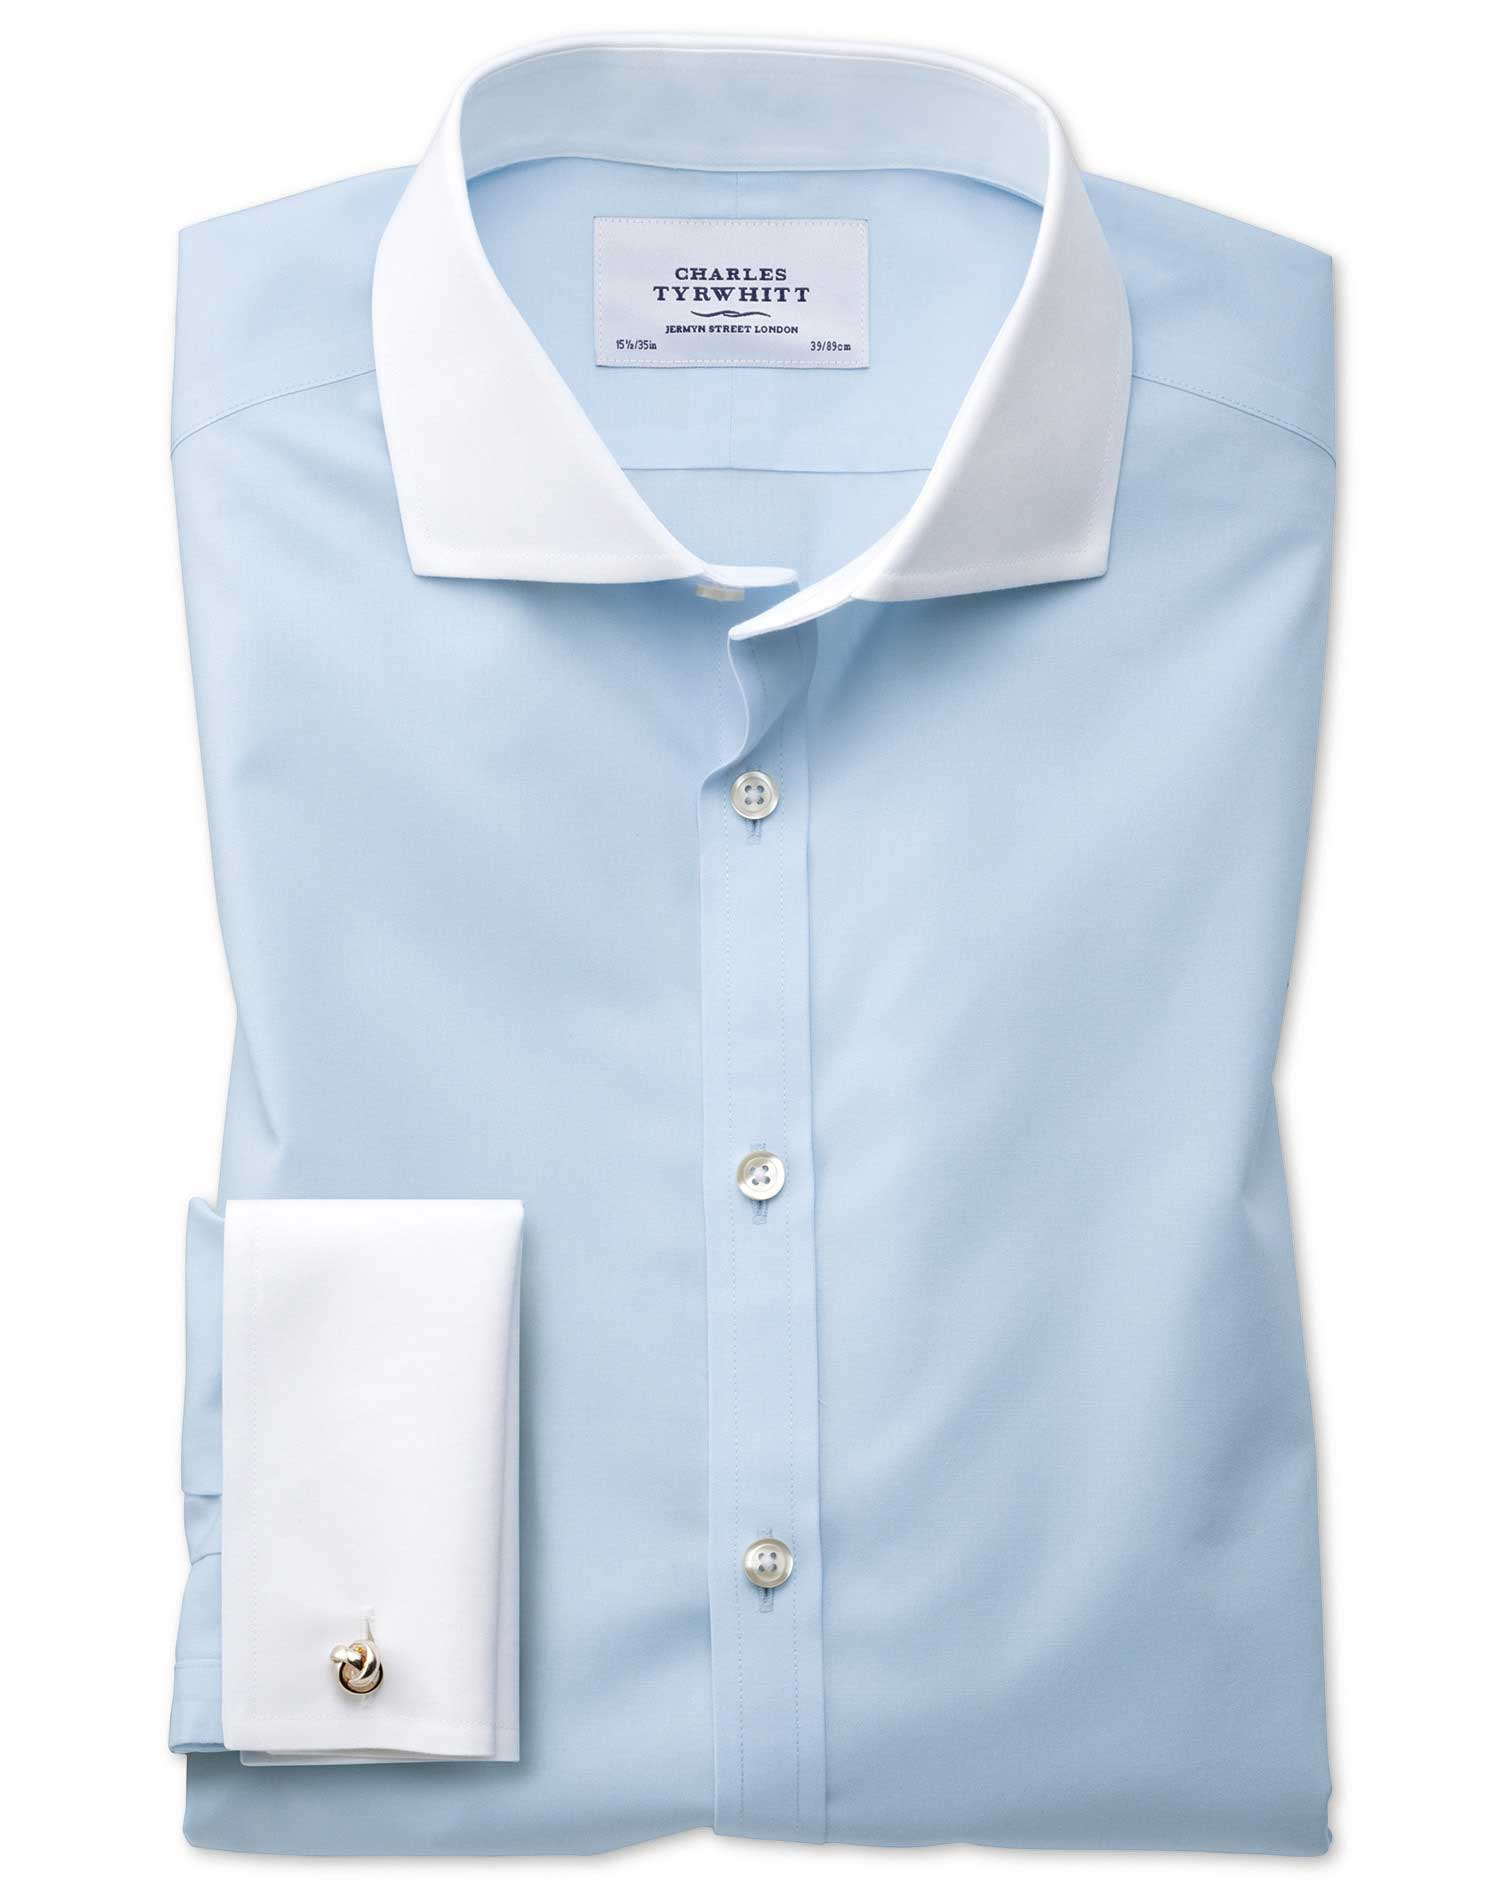 Extra Slim Fit Cutaway Non-Iron Winchester Sky Blue Cotton Formal Shirt Double Cuff Size 16/34 by Ch